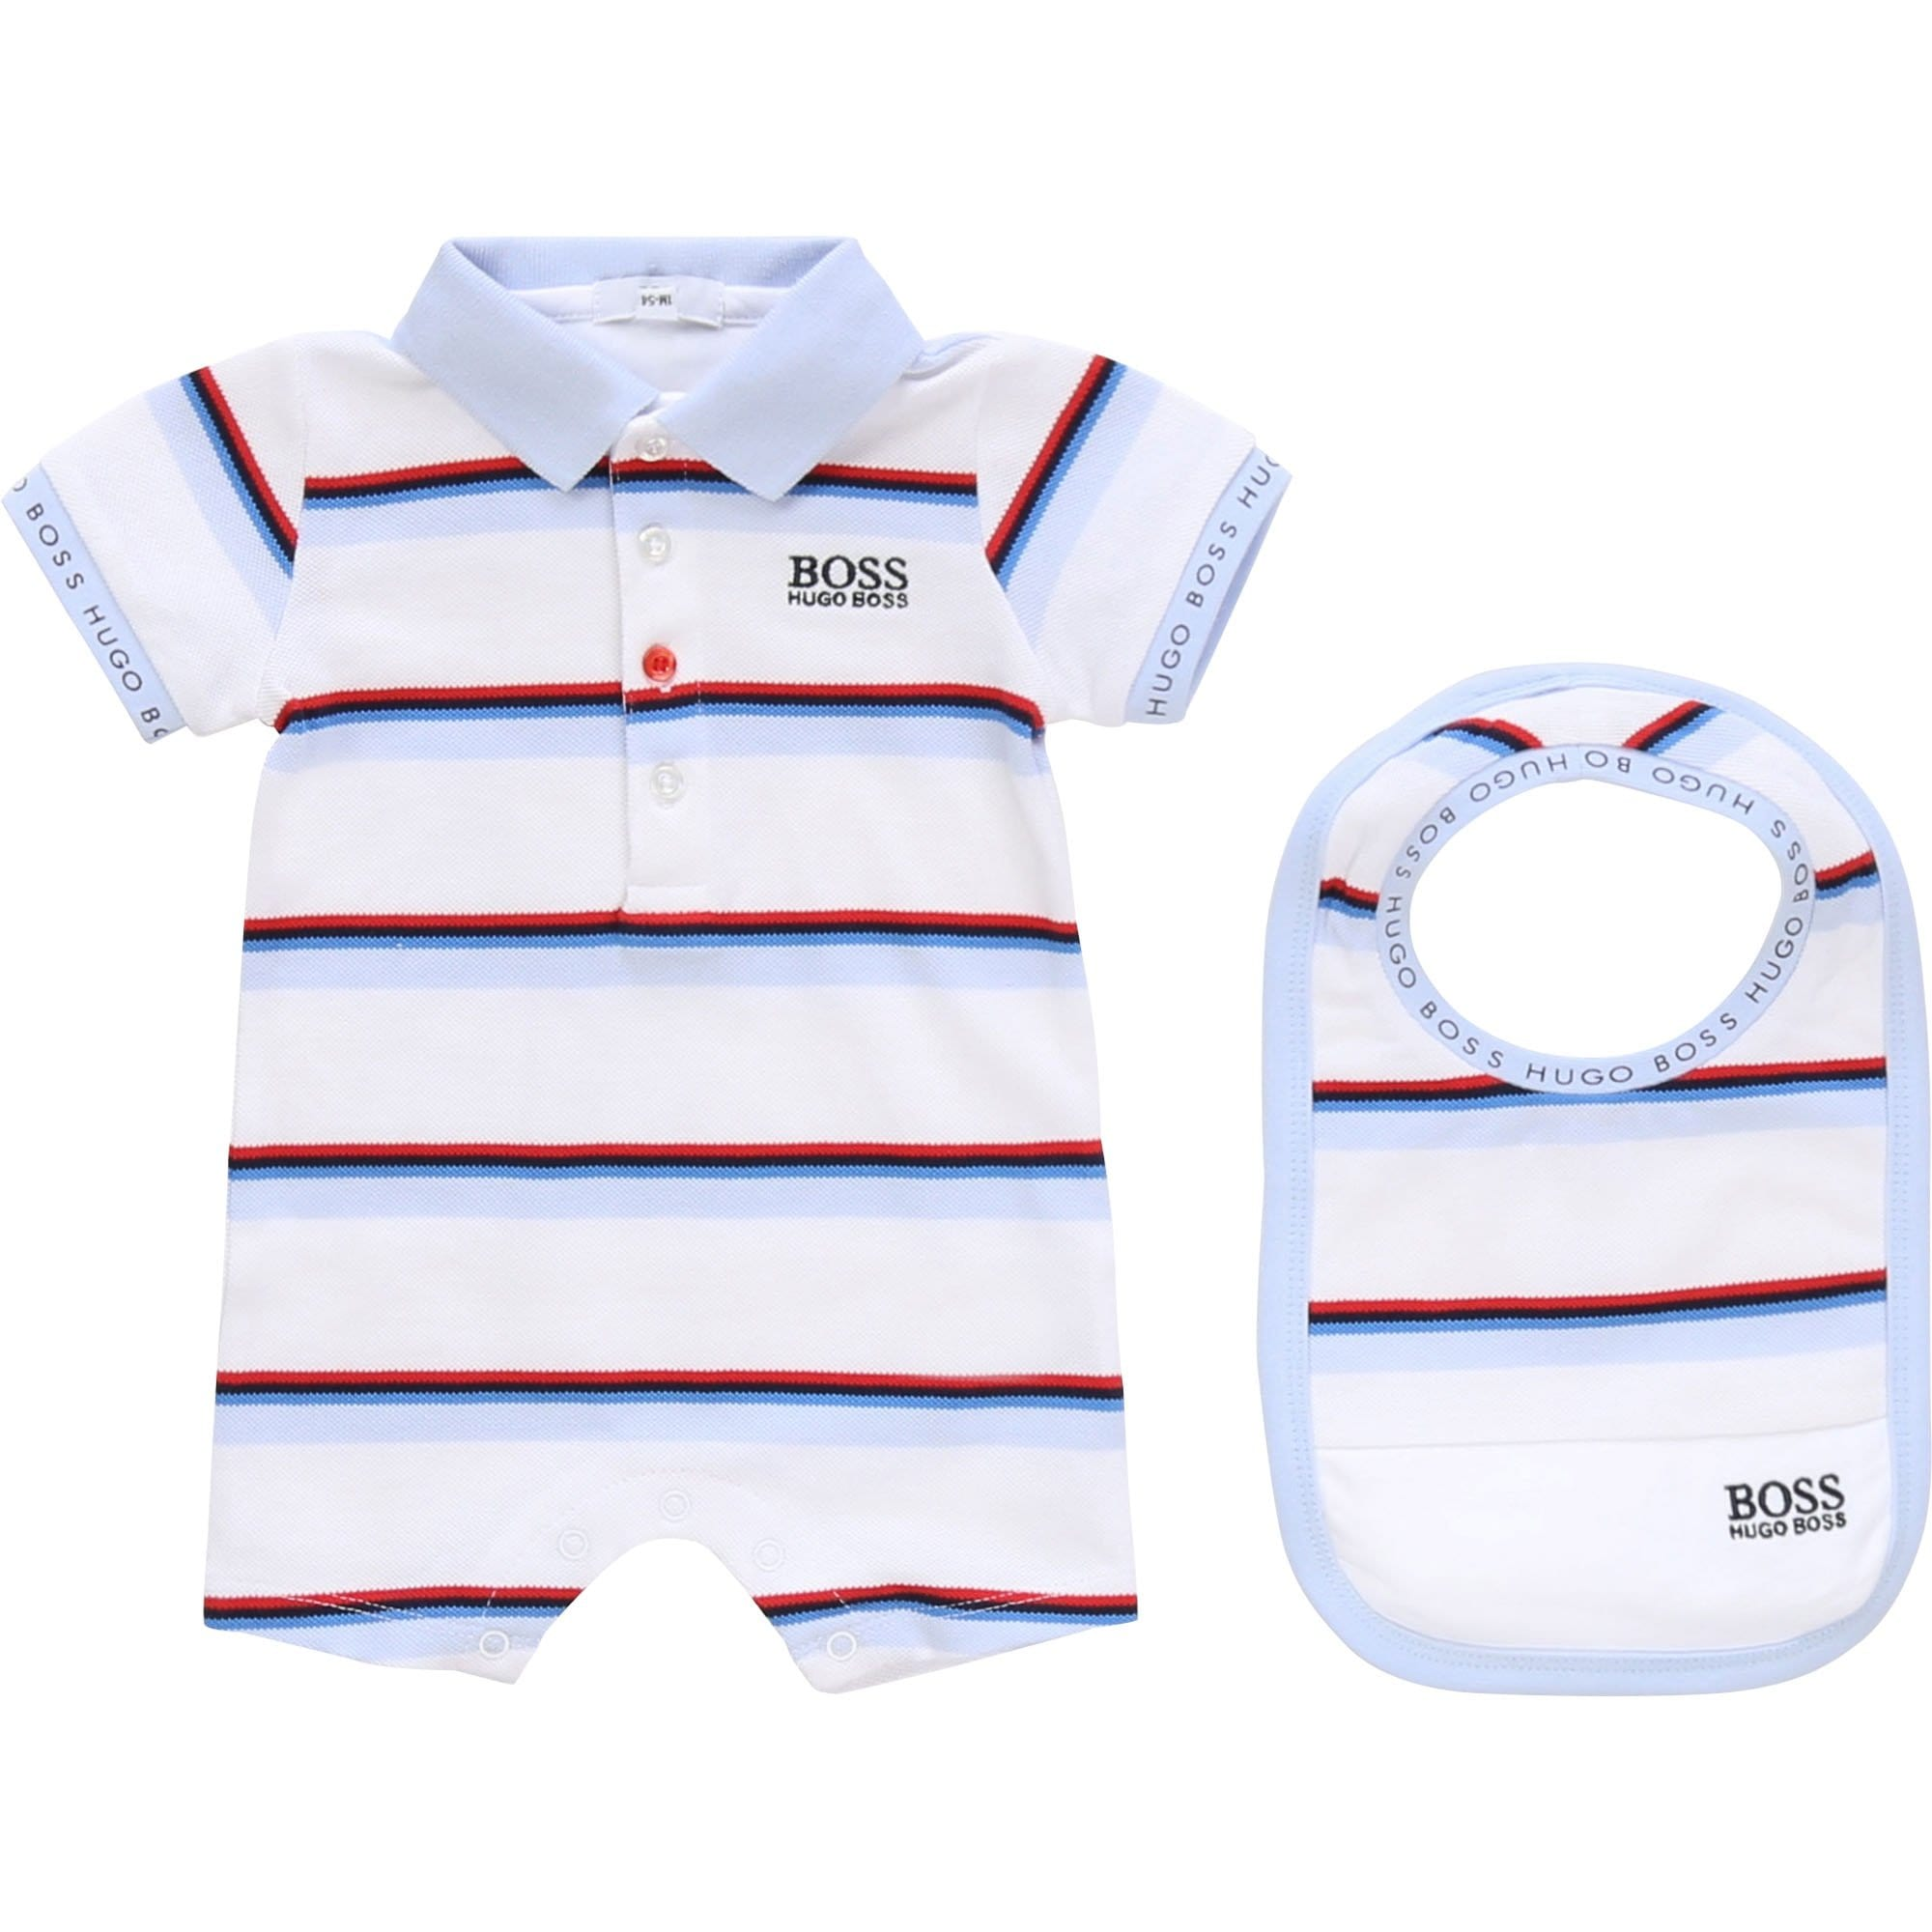 Hugo Boss Romper and Bib Set J98281/Z40